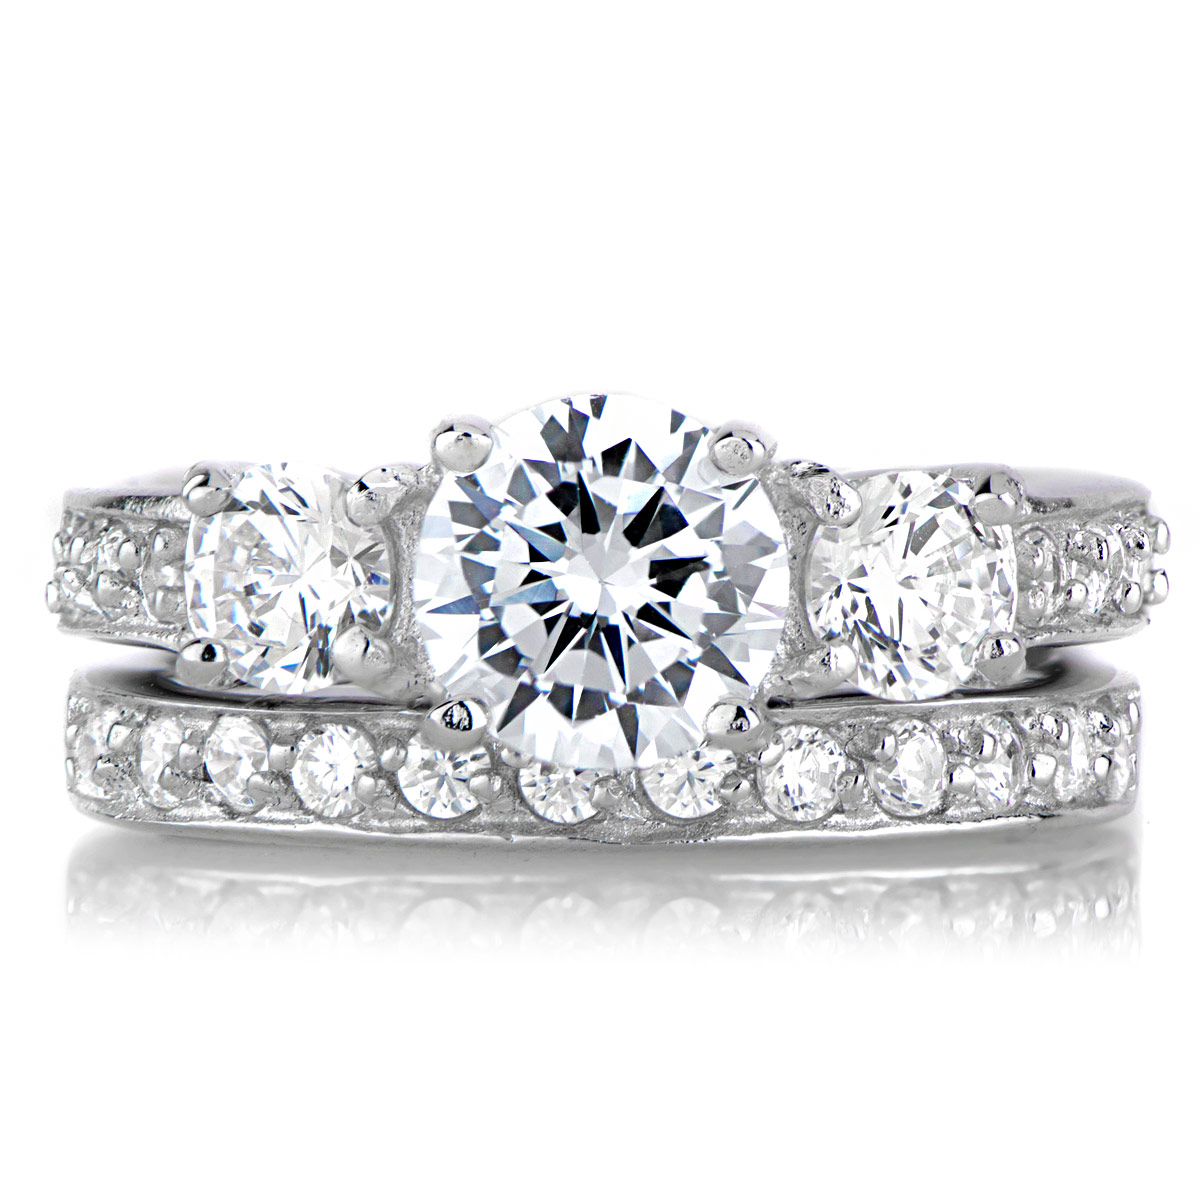 lokis 3 stone cz wedding ring set - Fake Wedding Ring